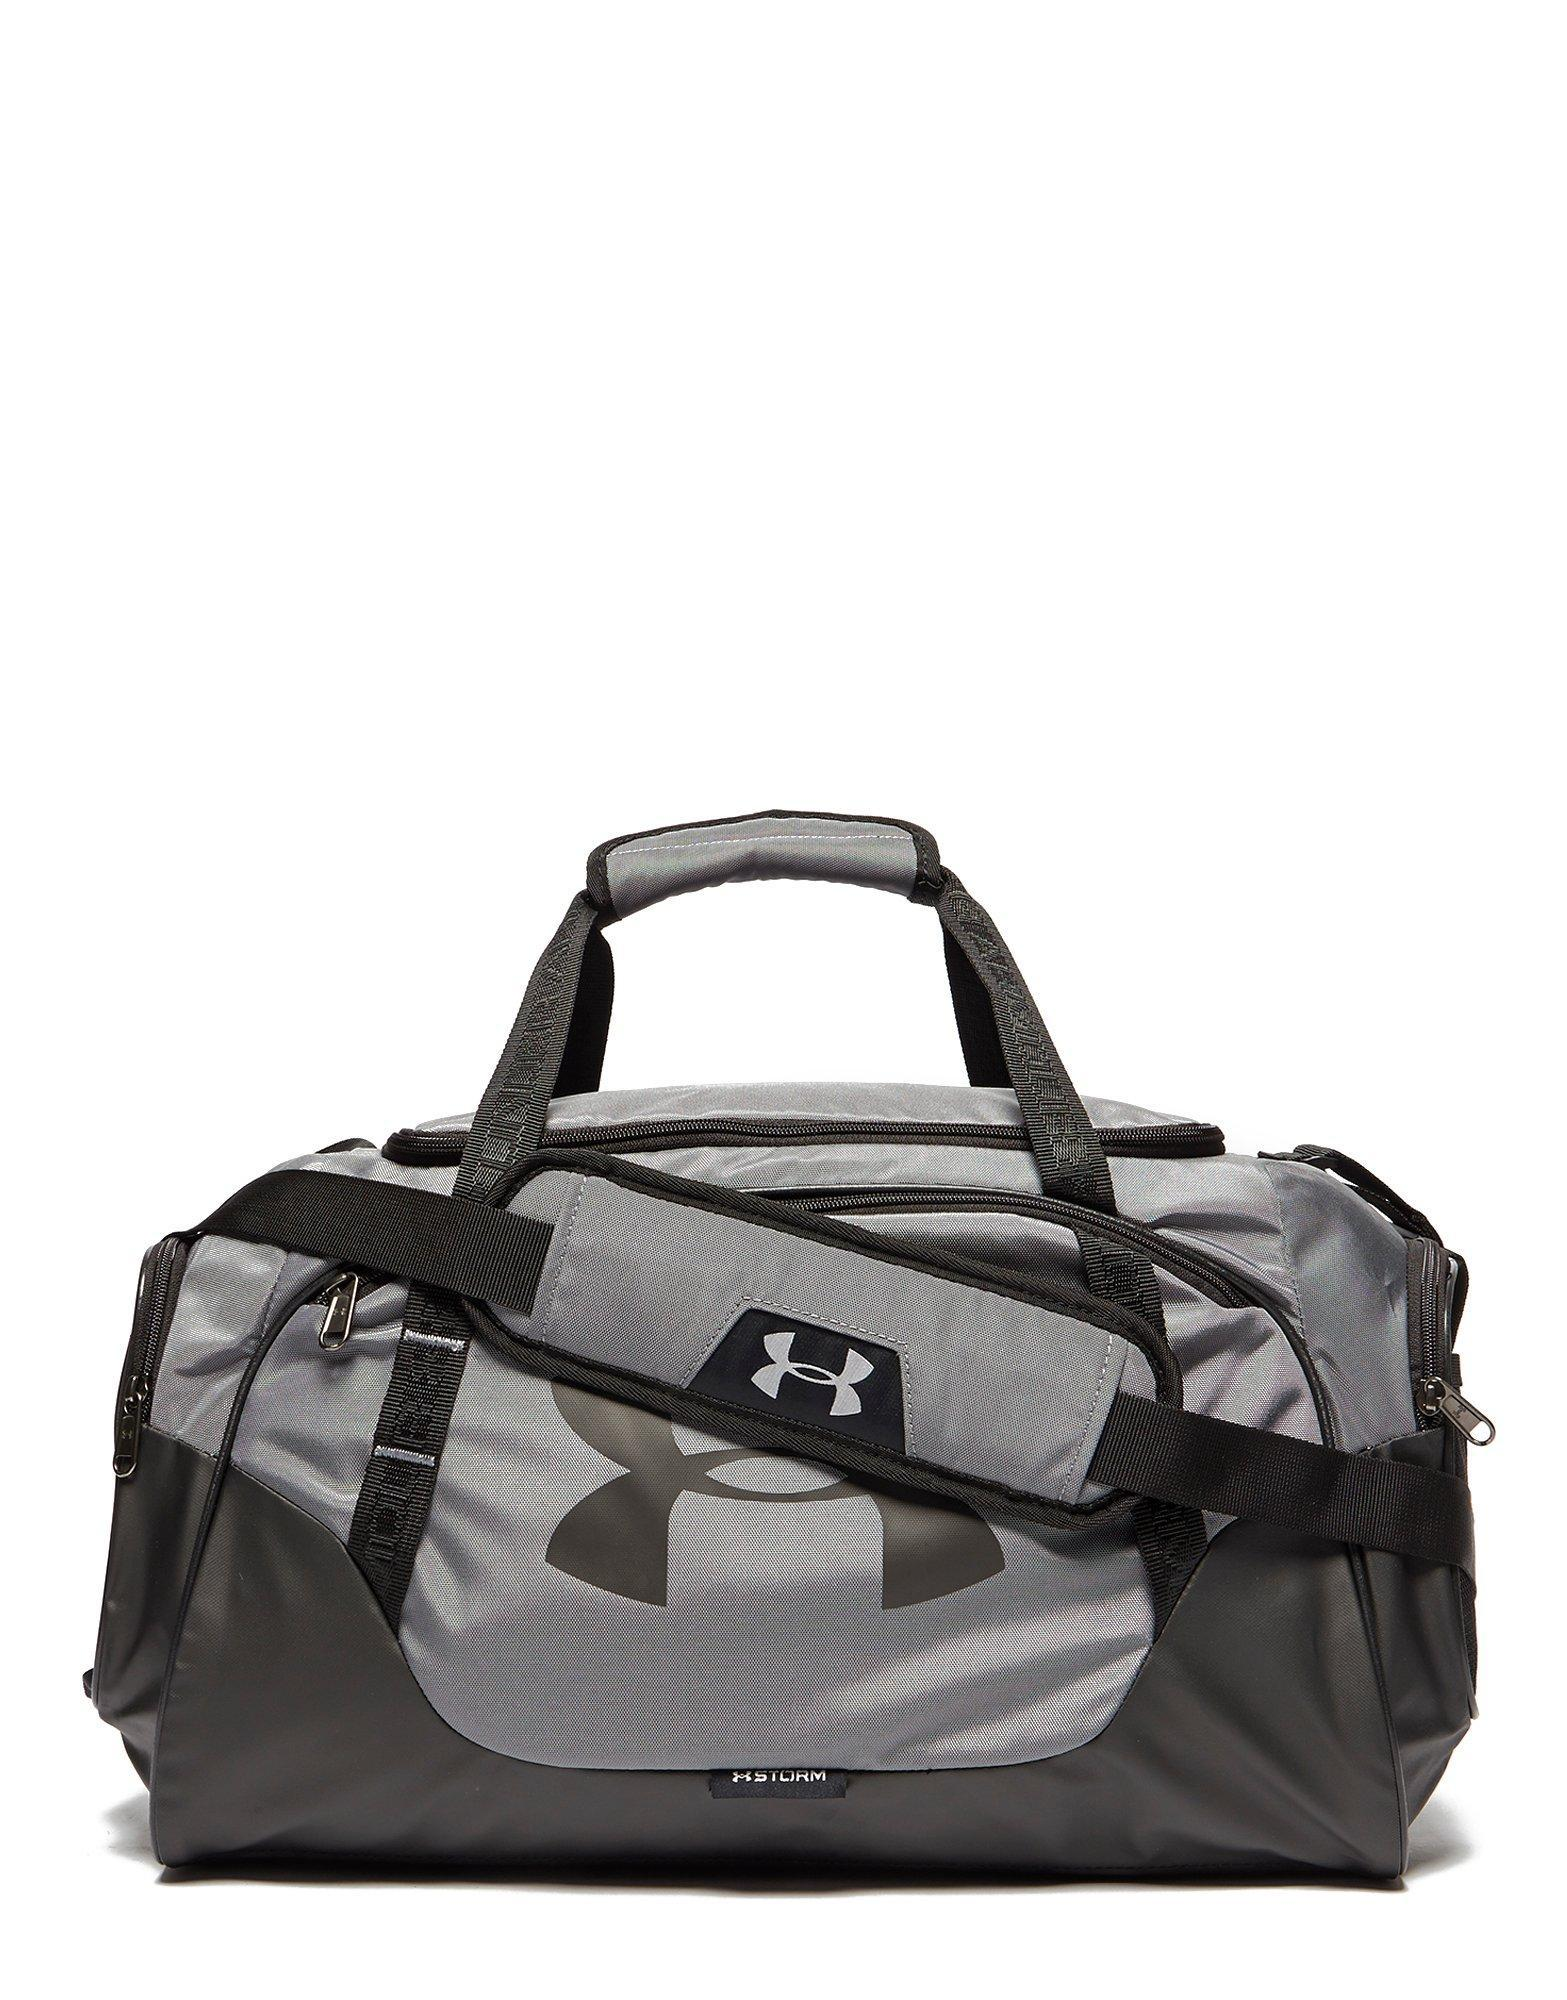 Lyst Nike Brasilia Small Duffle Bag In Black For Men Gym ... 7f5d12ee7fa79